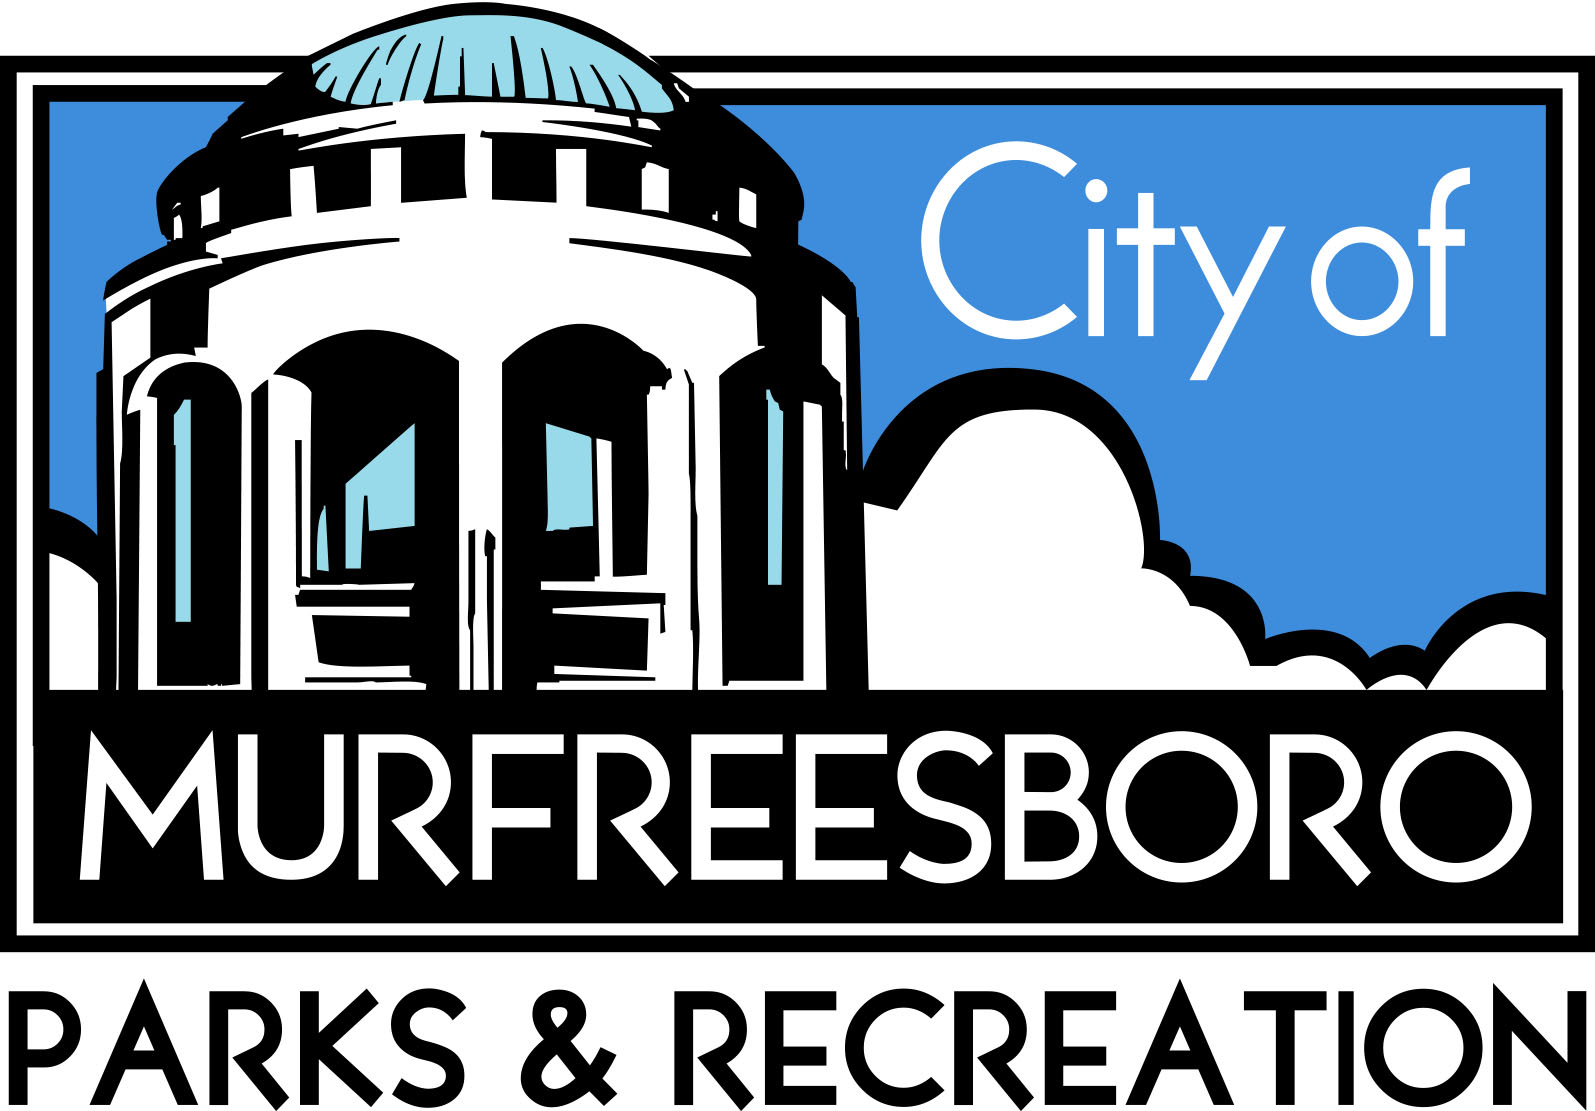 72nd Annual Murfreesboro City Closed Tennis Championship Tournament accepting entries